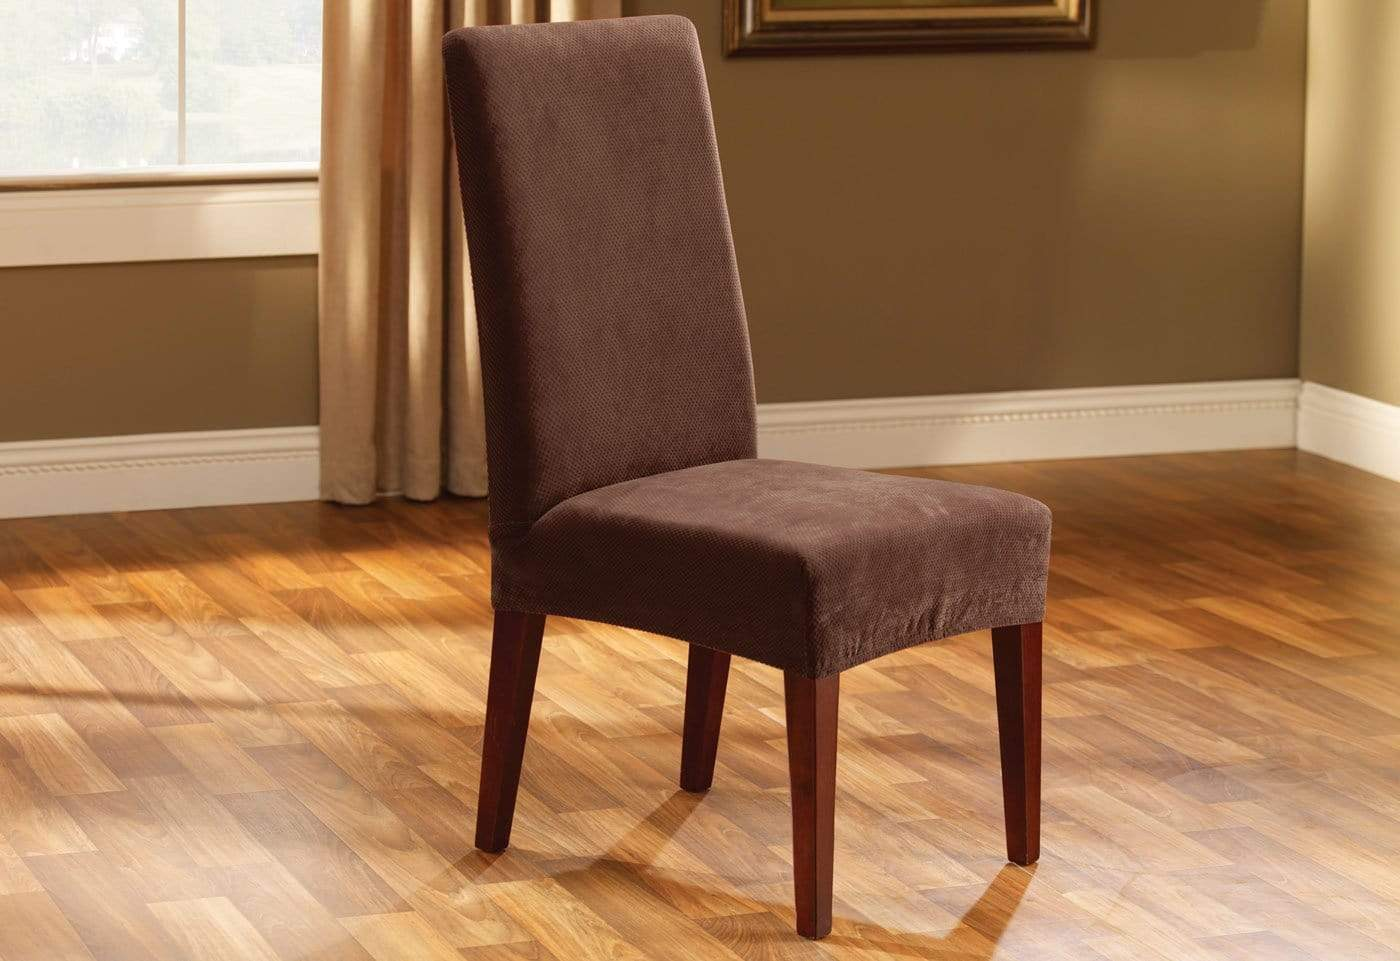 slipcovers stretch for wing design on lovely dining uncategorized parsons ideas double home size covers chair slip stylish slipcover a diamond sew with full of